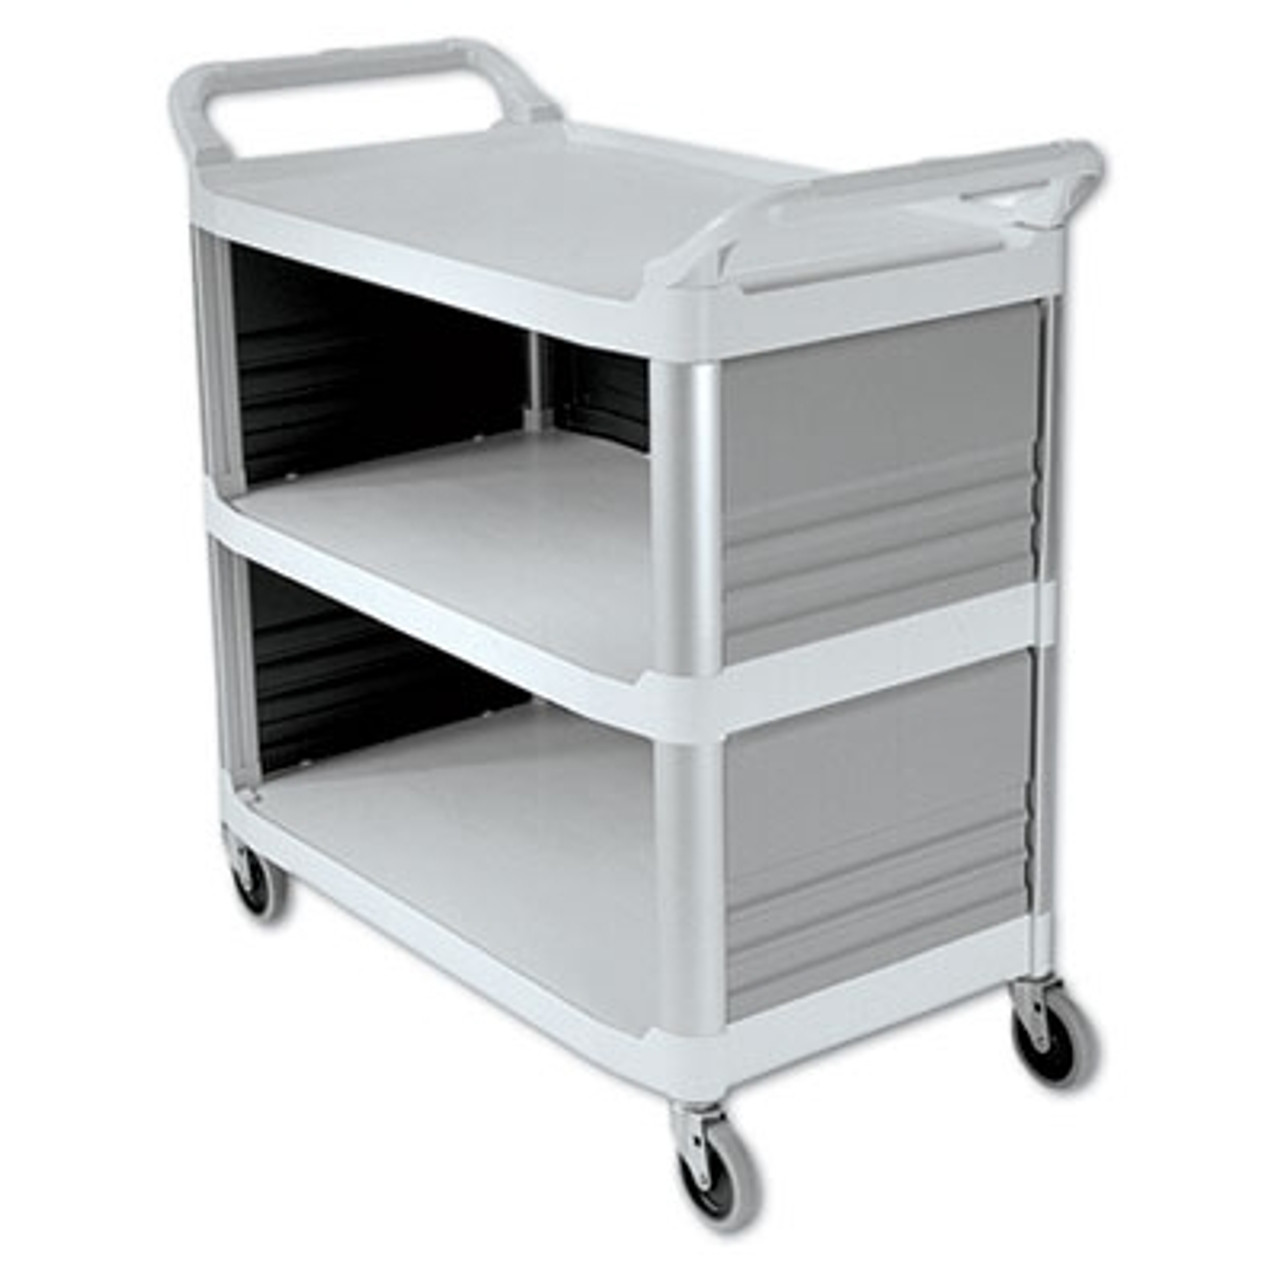 Rubbermaid Commercial Xtra Utility Cart, 300-lb Cap., 3 Shelves, 20w x 40d 5/8 x 37 4/5h, Off-White